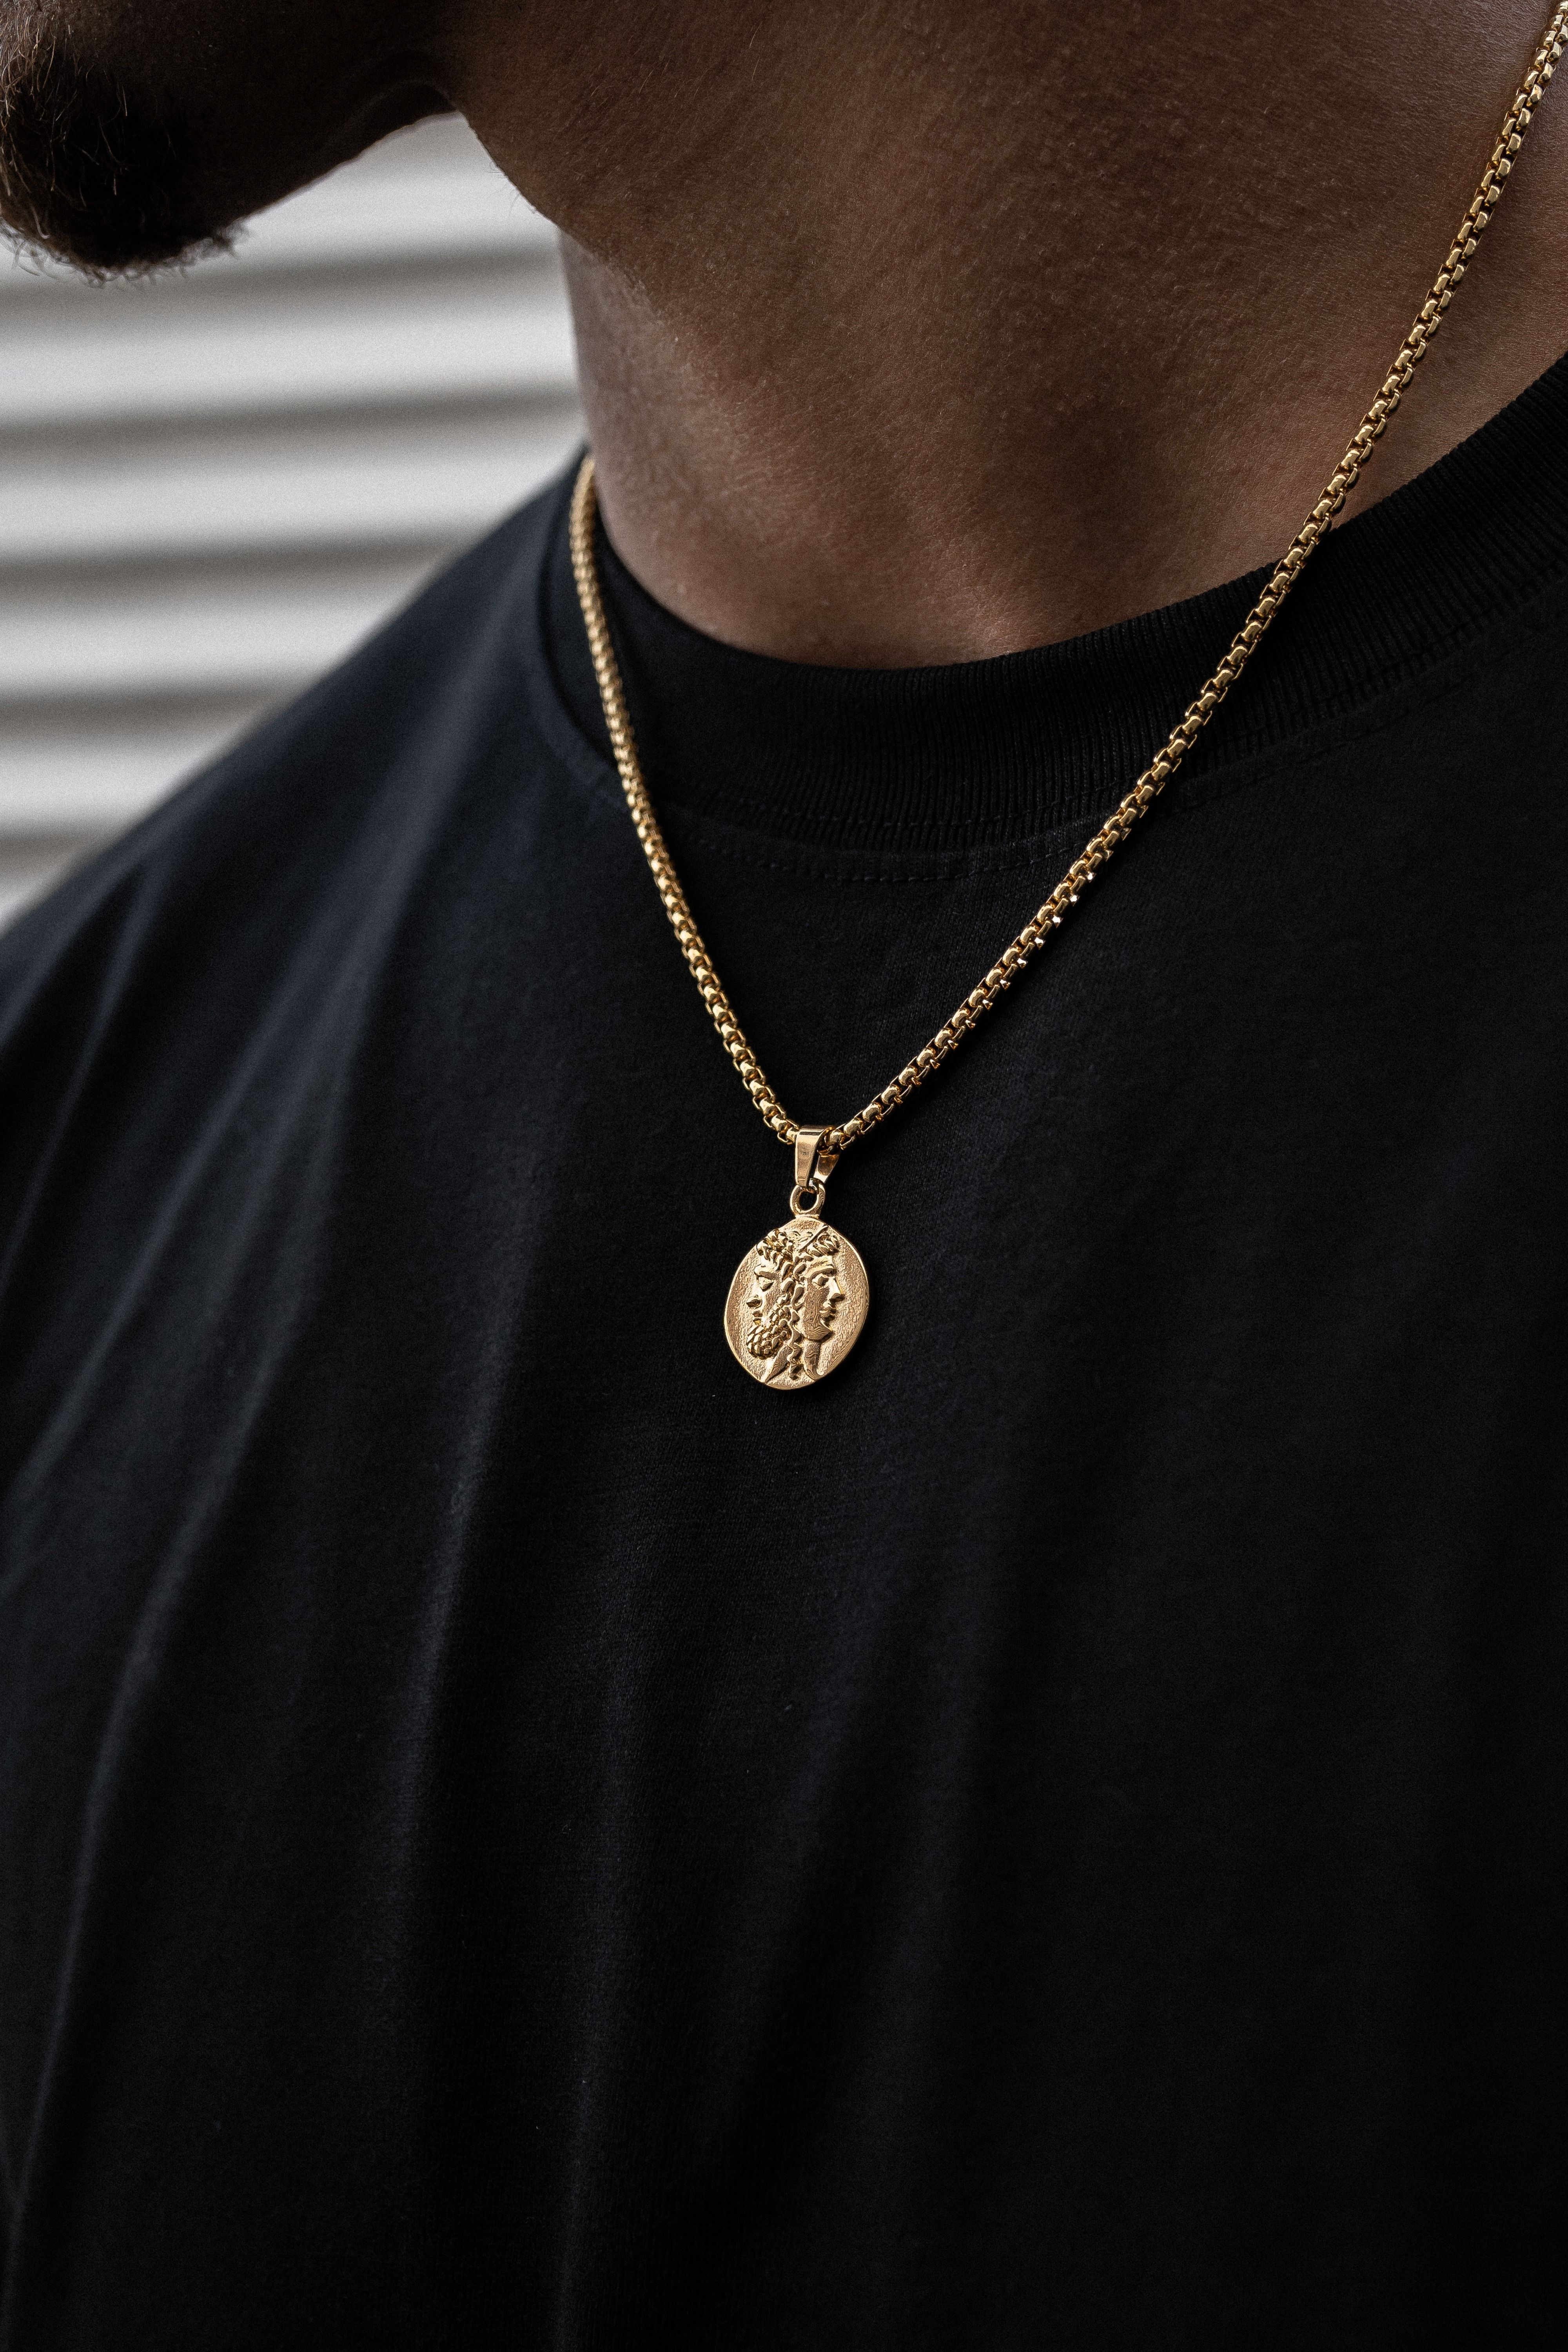 Nails Necklace Chain Mens Necklace Chain Mens Necklace Pendant Gold Chains For Men Neckla In 2020 Mens Necklace Fashion Mens Chain Necklace Mens Necklace Pendant